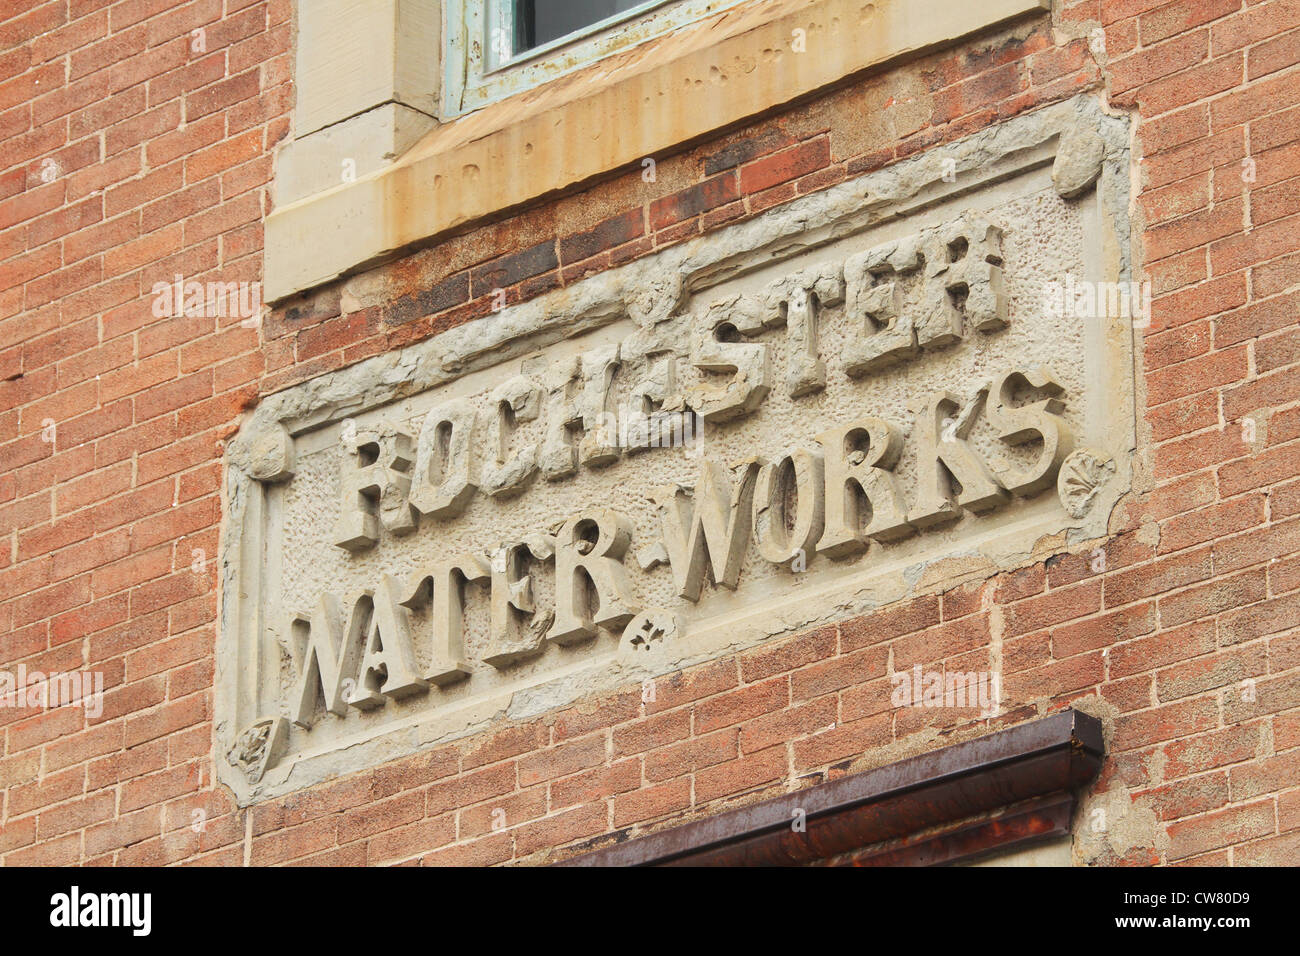 Sign for Rochester Water Works Building. Circa 1873. 74 Brown's Race, Rochester, New York, USA. - Stock Image